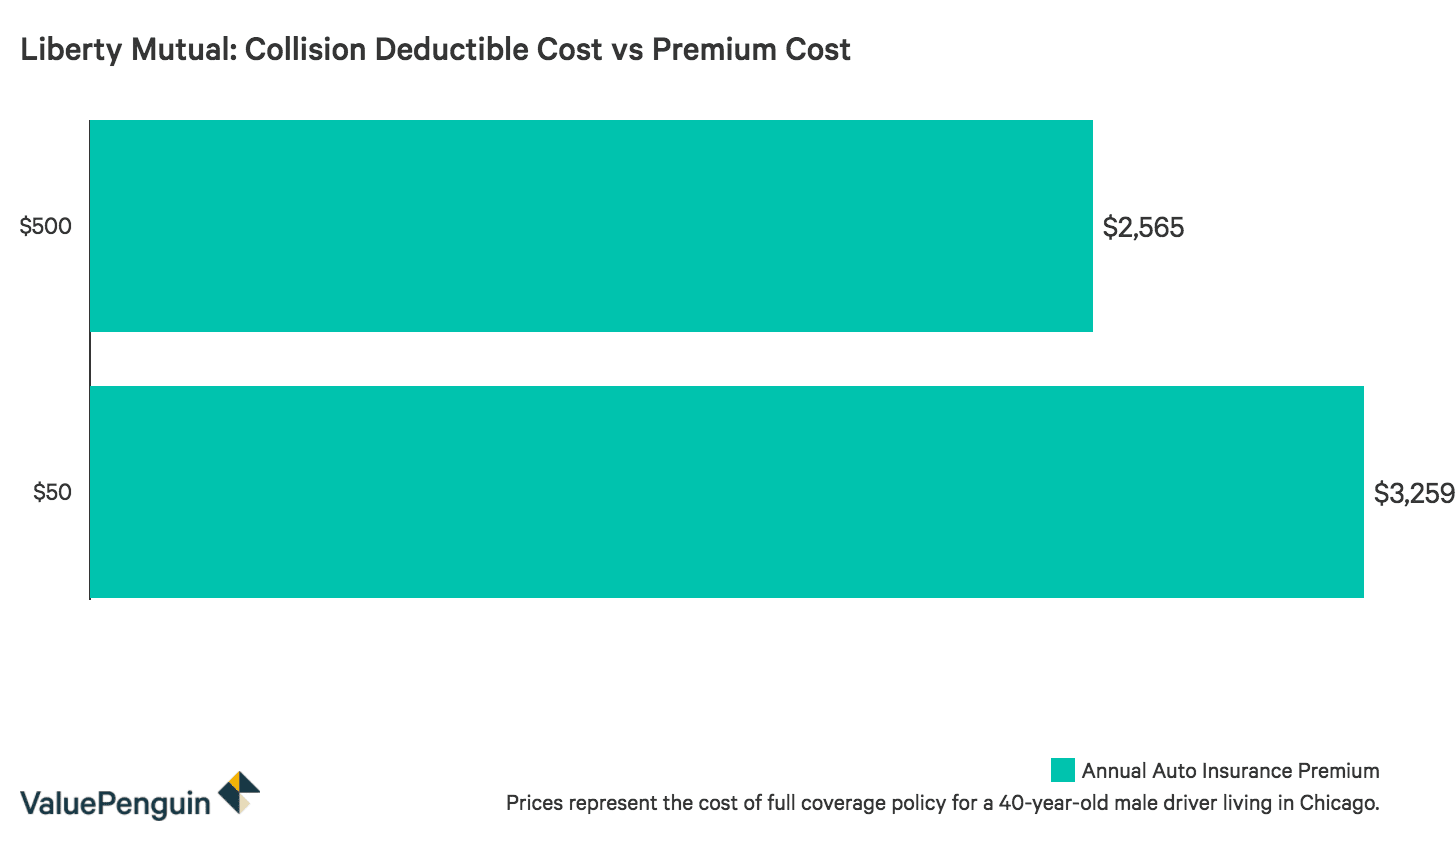 Chart comparing the cost of a full coverage policy for different deductibles